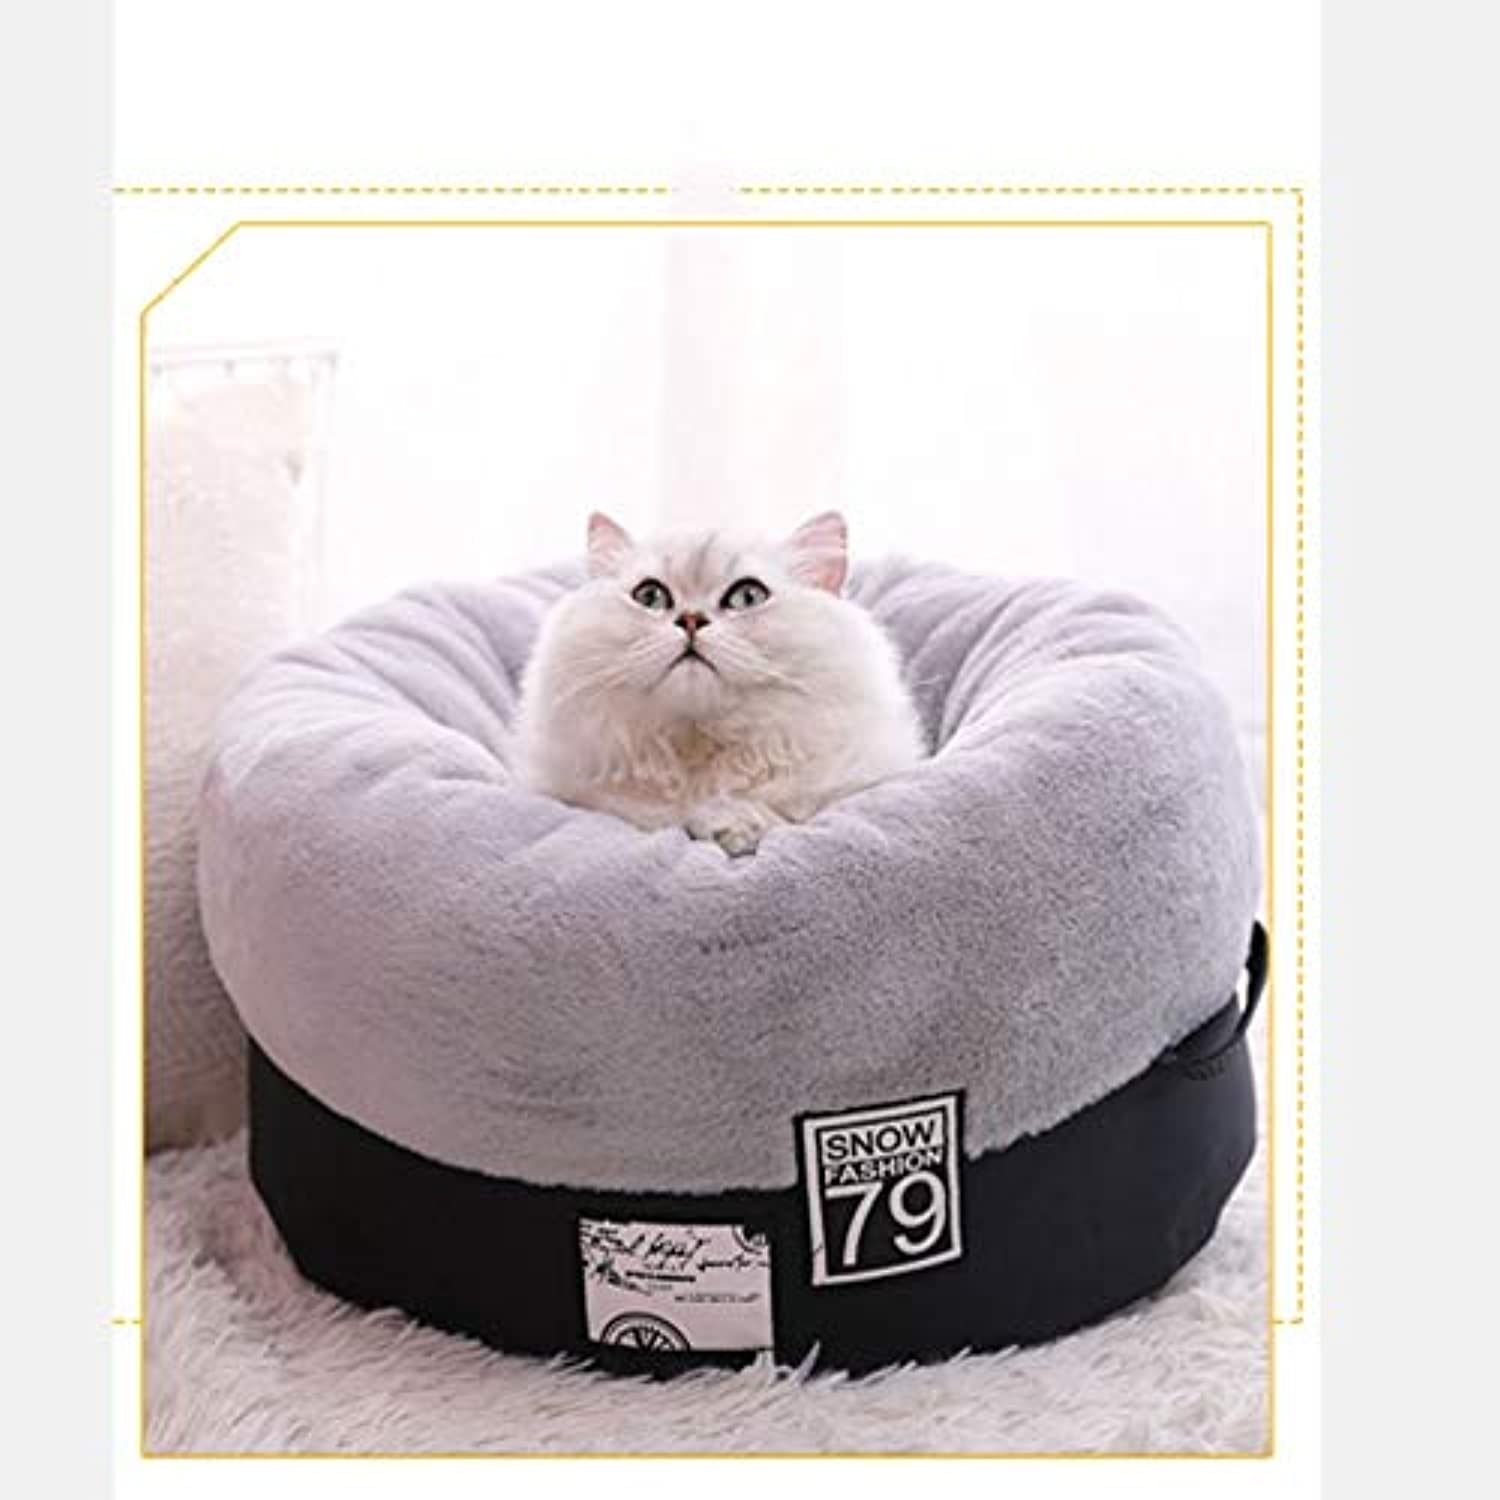 Pet bed Pet Sleeping Cabin Universal for Four Seasons Can Be Separately Removed and Washed Easy to Move NonSlip Design Pet Supplies (color   Black, Size   A45  45  25cm)